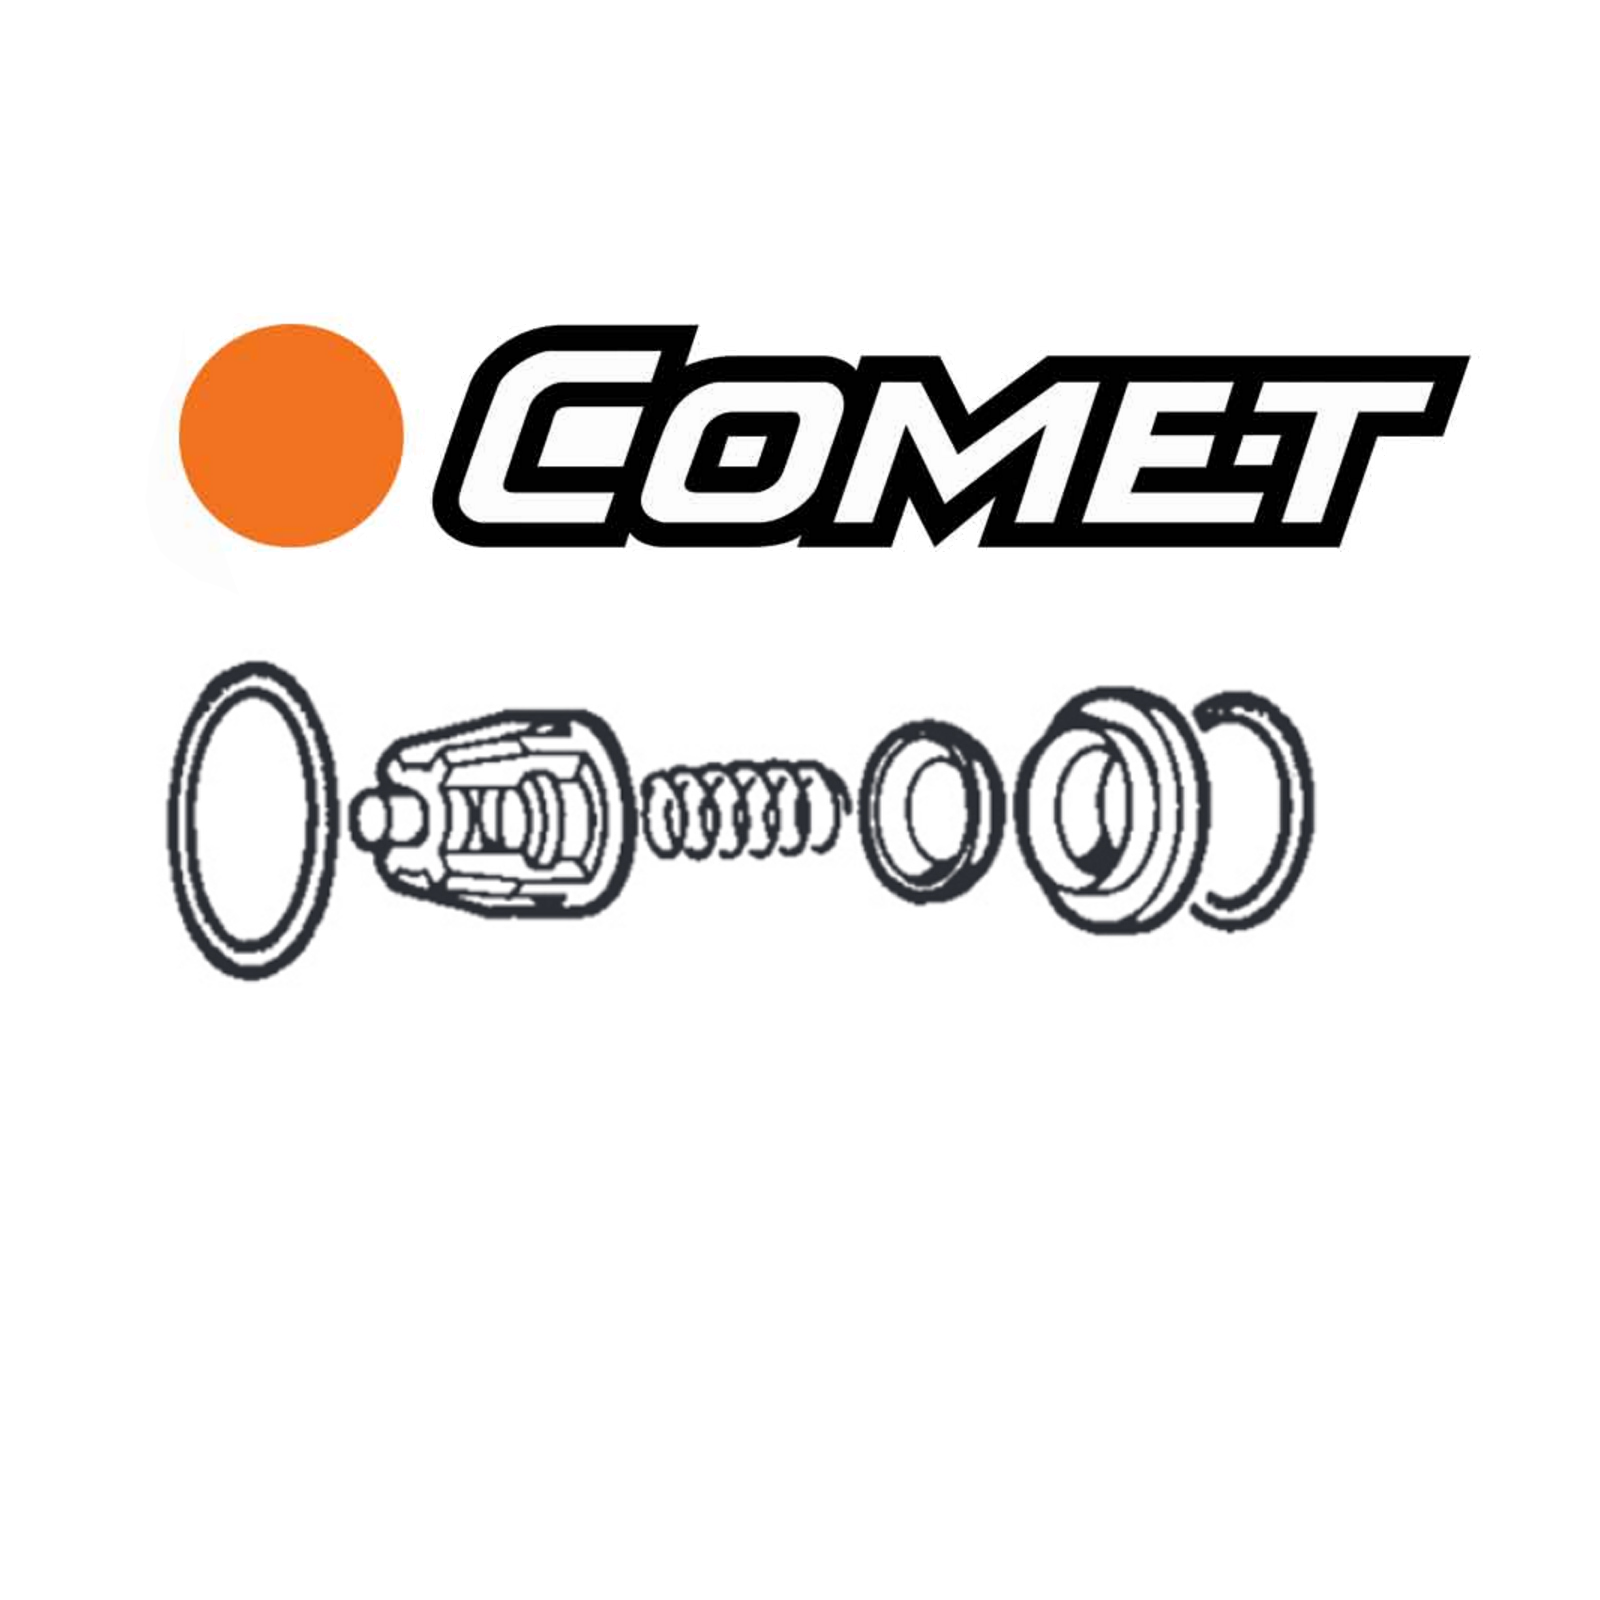 Comet Pump Check Valve Repair Kits